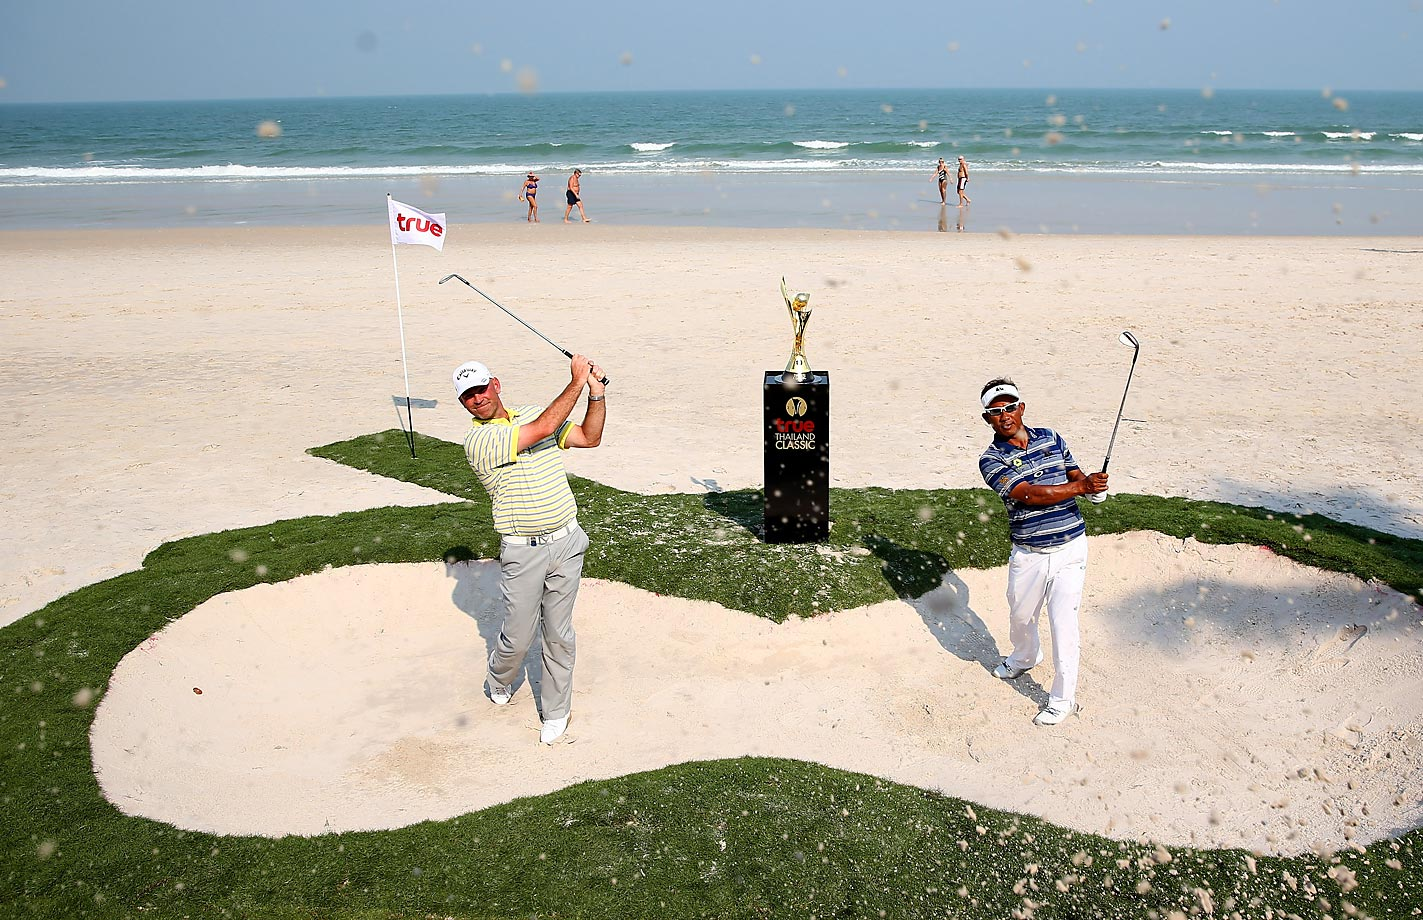 Thomas Bjorn of Denmark and Thongchai Jaidee of Thailand pose for the media to promote the Thailand Classic golf event on the beach outside the Intercontinental Hua Hin Resort in Thailand.